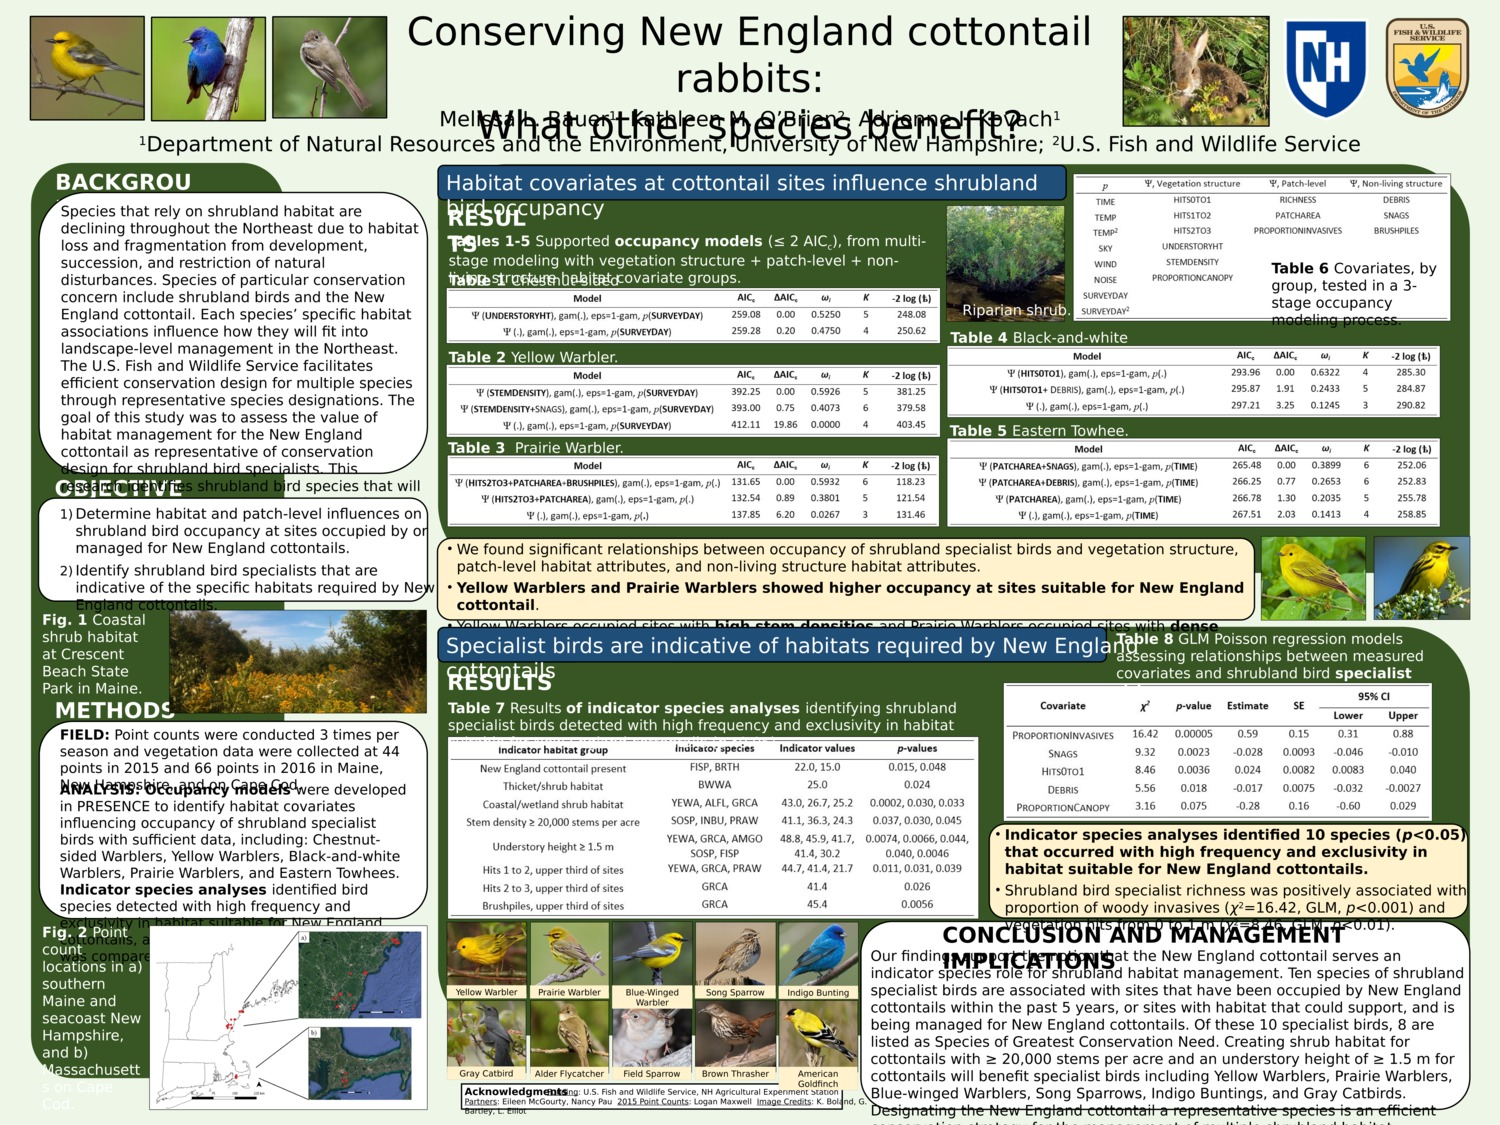 Conserving New England Cottontail Rabbits: What Other Species Benefit? by mle1003